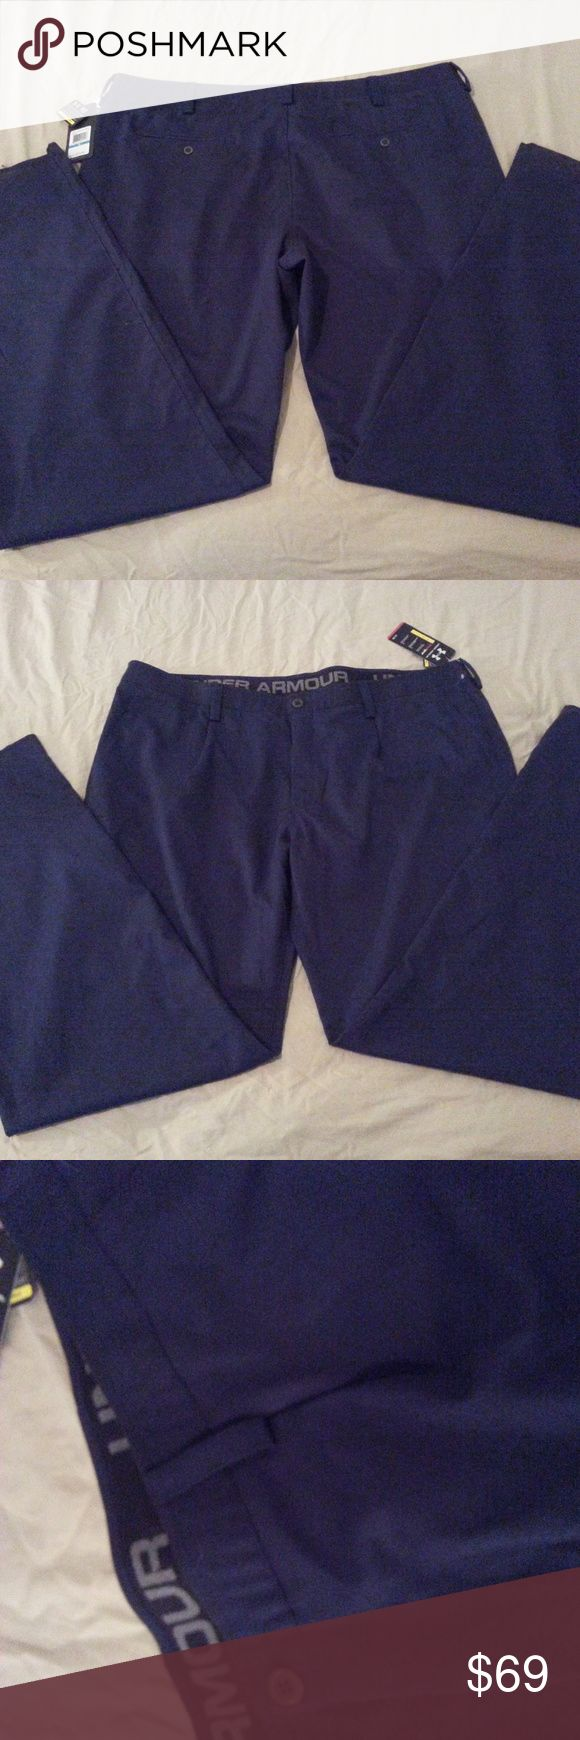 Mens New Under Armour Pants 46x38 Navy Blue Athlet Mens New Under Armour Pants 46x38 Navy Blue Athletic Golf  Hi! Welcome to my store! Up for sale is a pair of Under Armour Shorts. The size is 42. Waist measures 21 1/2 inches laying flat. Inseam is 38 inches. If the item does not meet your expectations you can return for a full refund. Please message me if you have any questions. Thanks for looking! Under Armour Pants